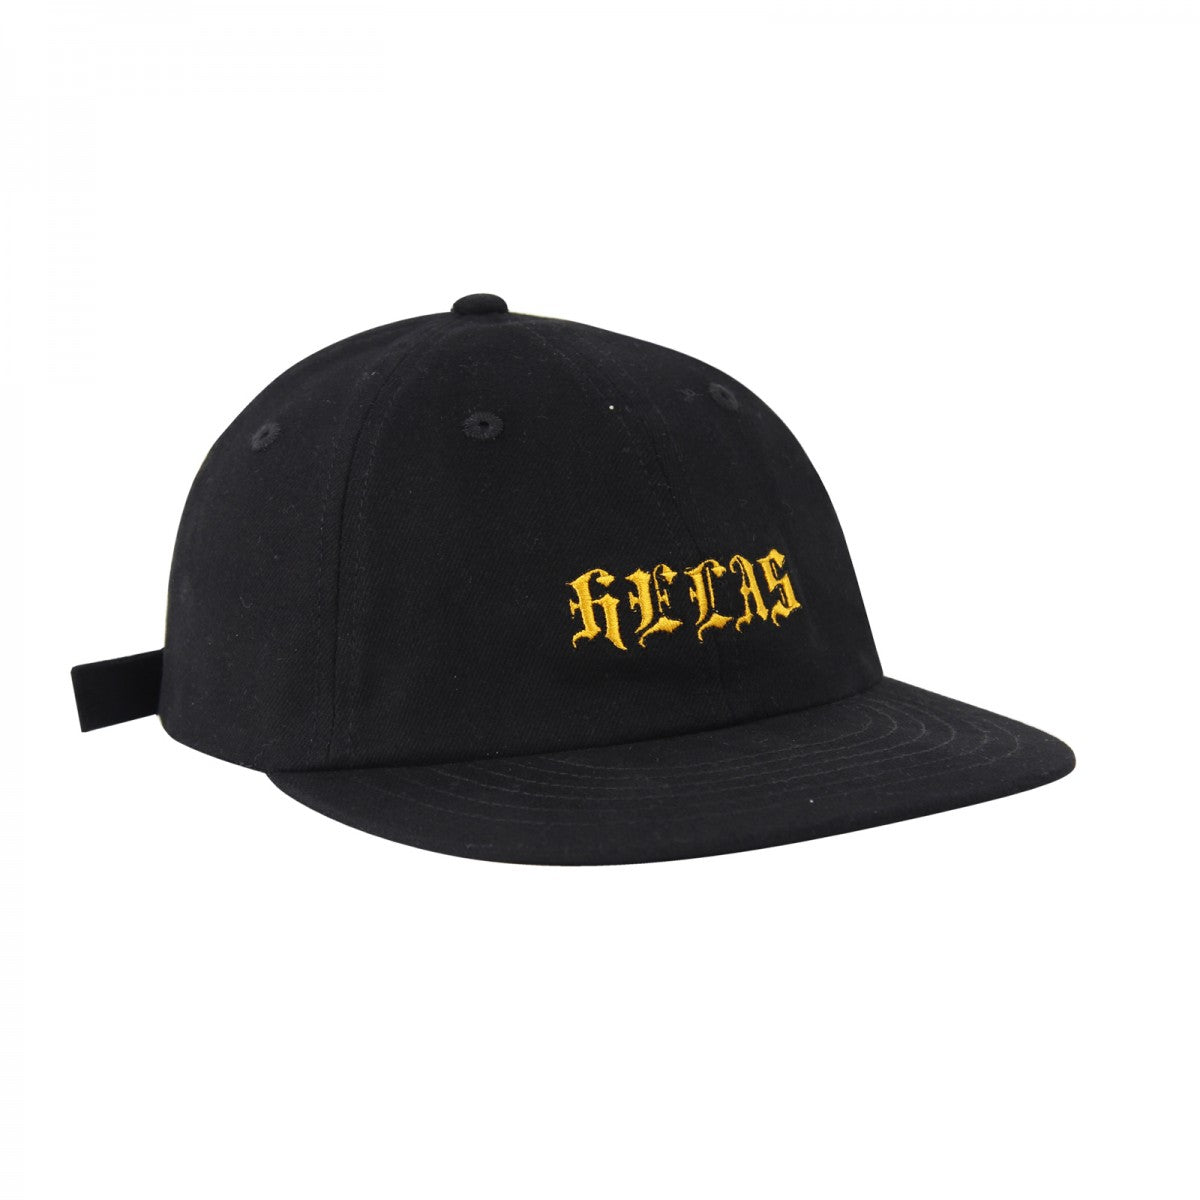 Helas - Cholo Cap Black